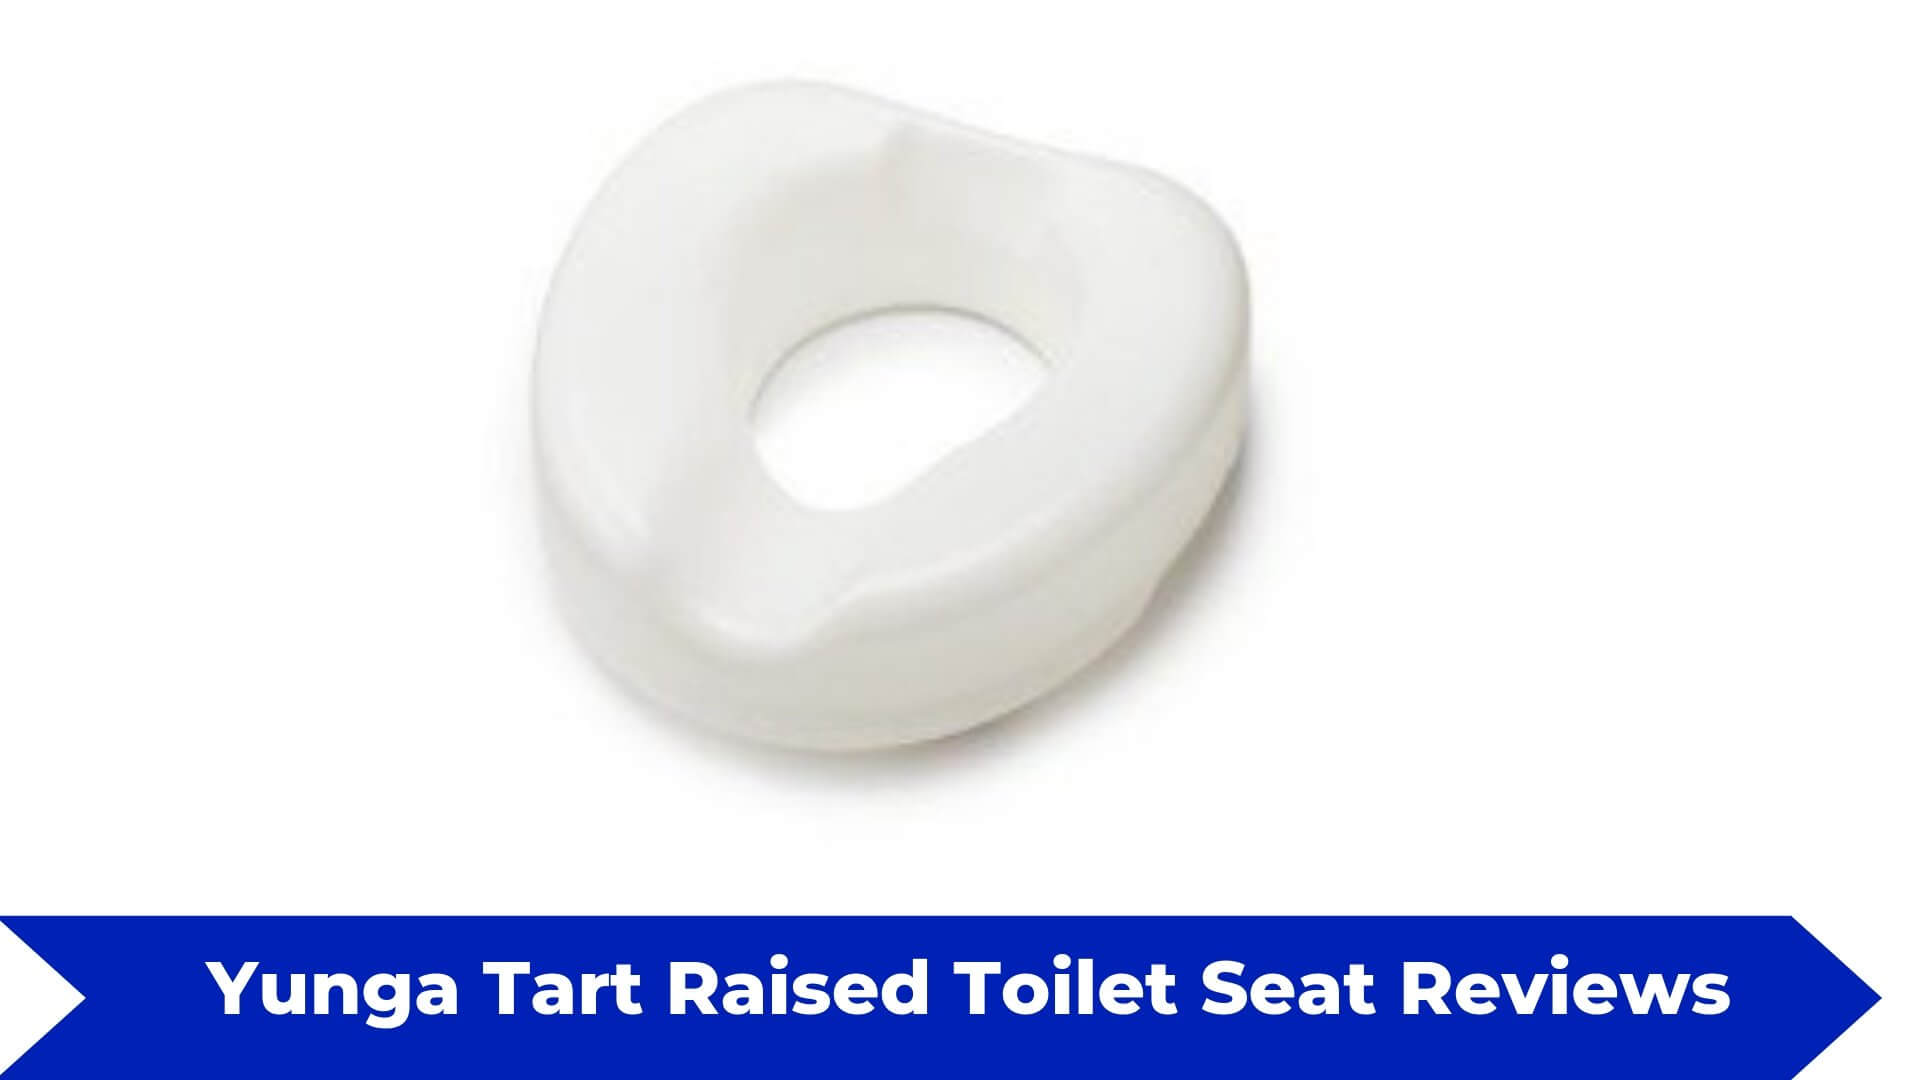 Yunga Tart Raised Toilet Seat